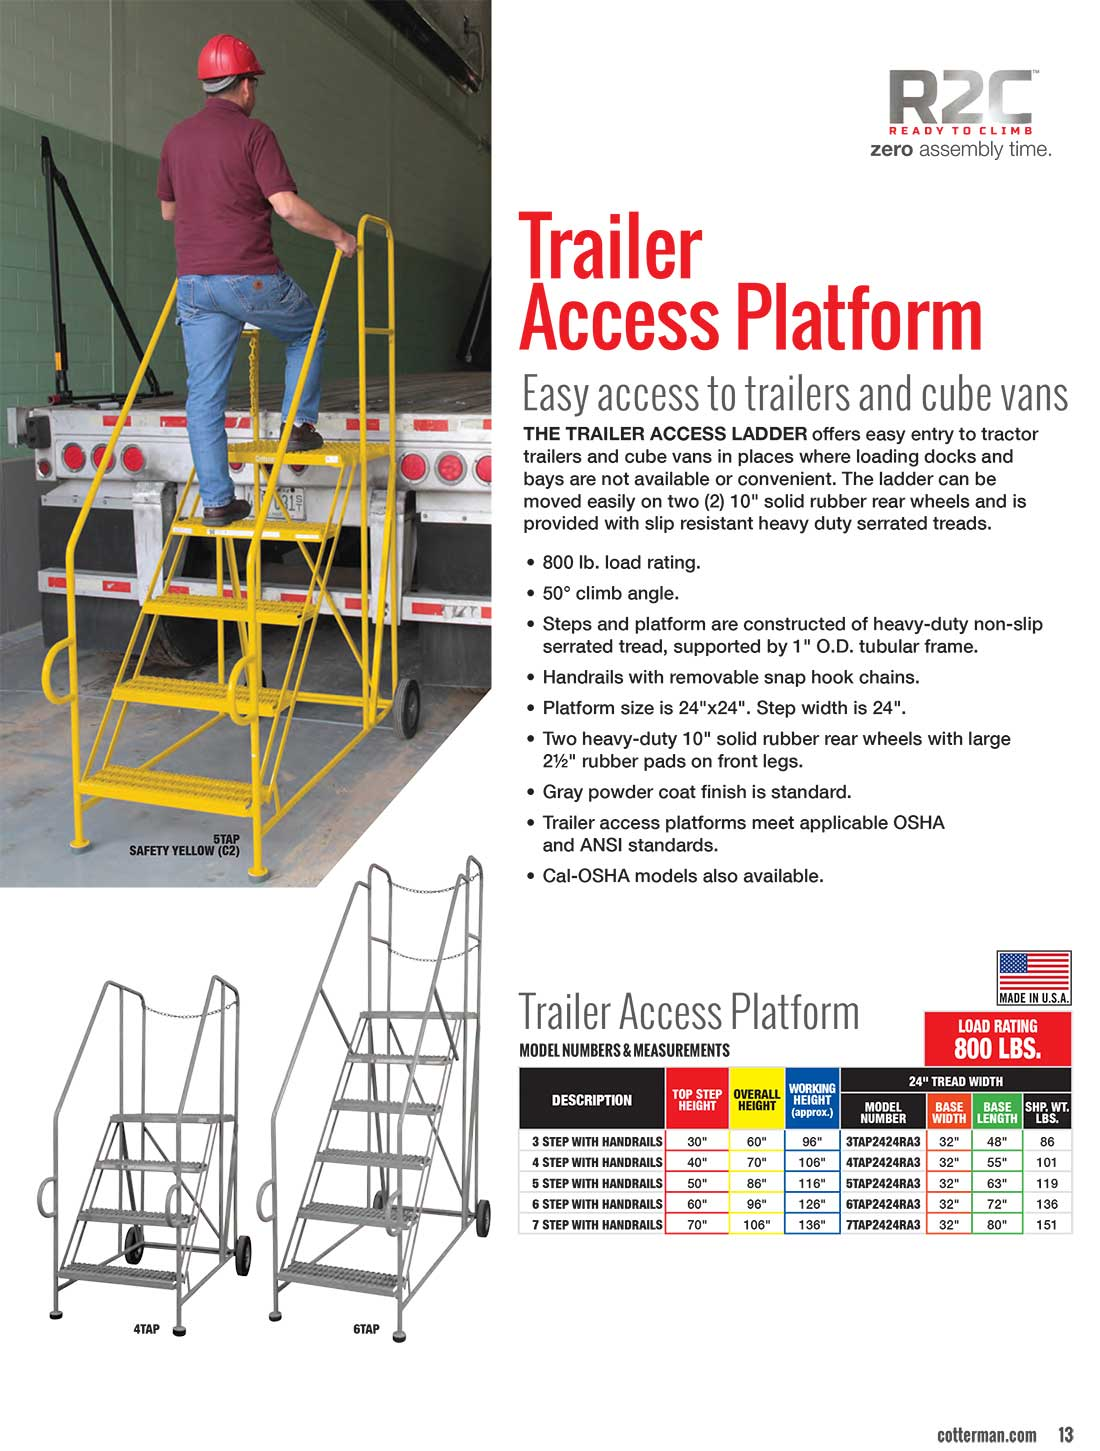 Cotterman Trailer Access Ladder Technical Specs